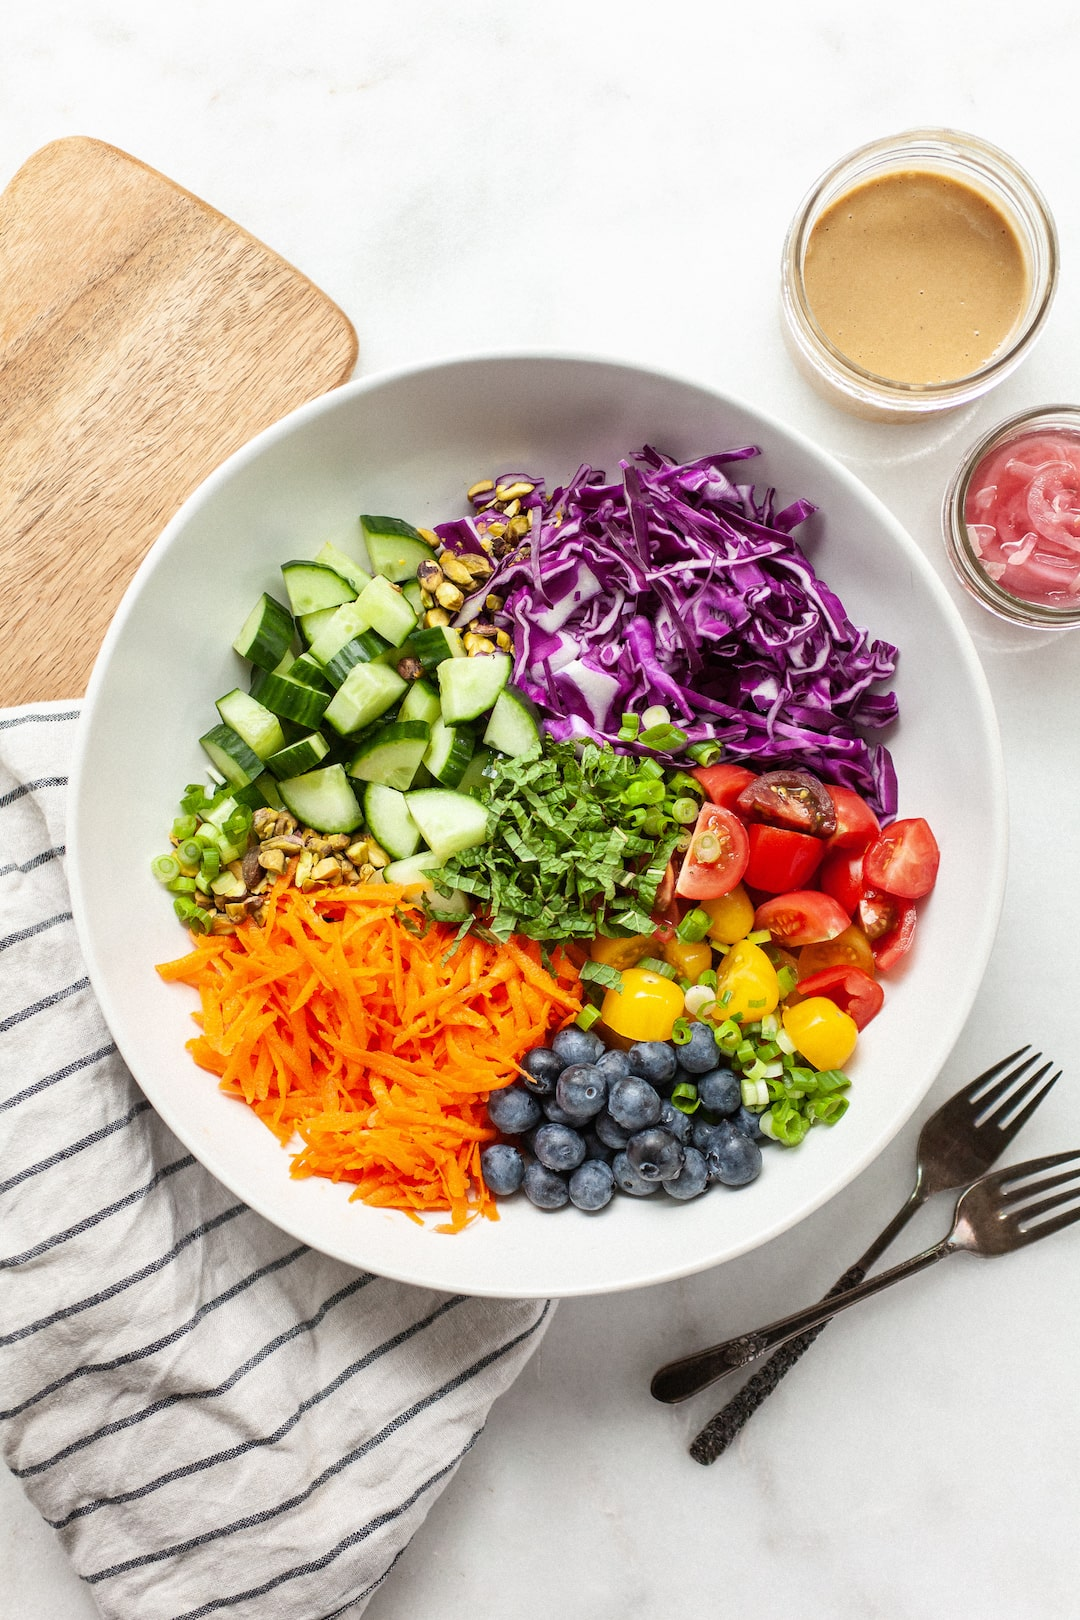 bowl of colourful vegetables including cabbage, cucumber, carrots, and tomatoes